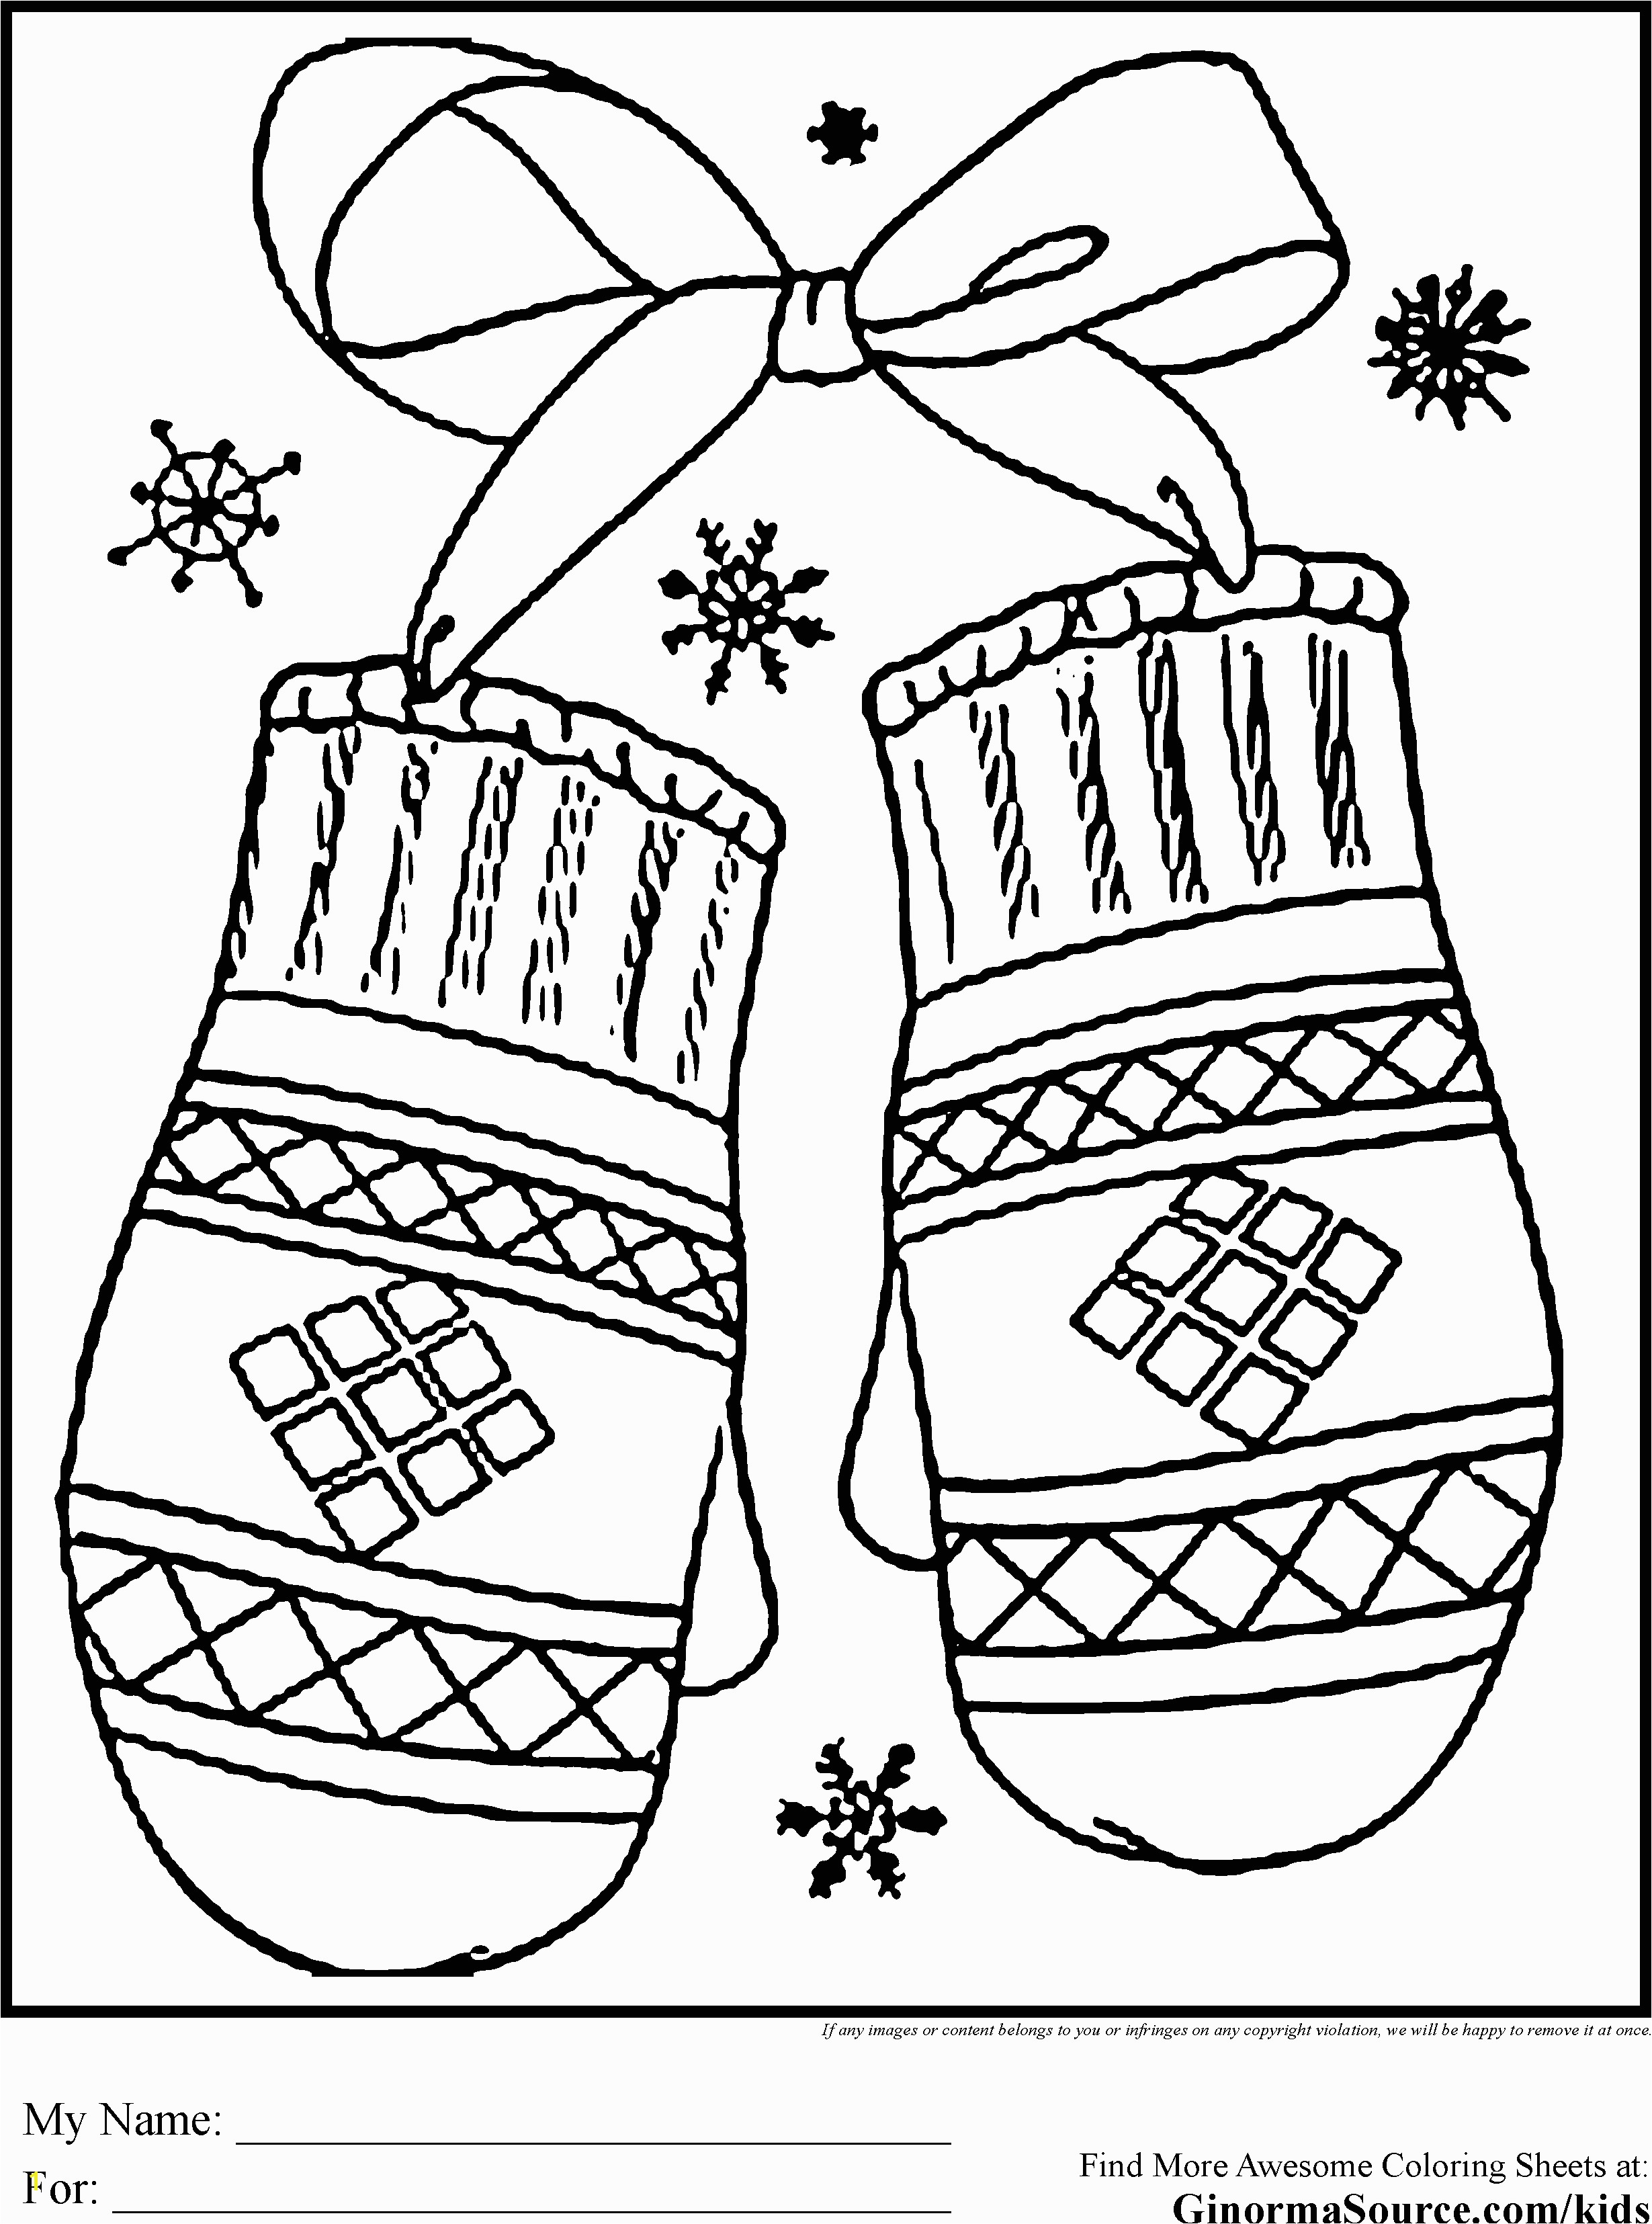 Holiday Coloring Pages Printable Free Holiday for Kids Free Printable Coloring Pages Qap0 and Mofassel